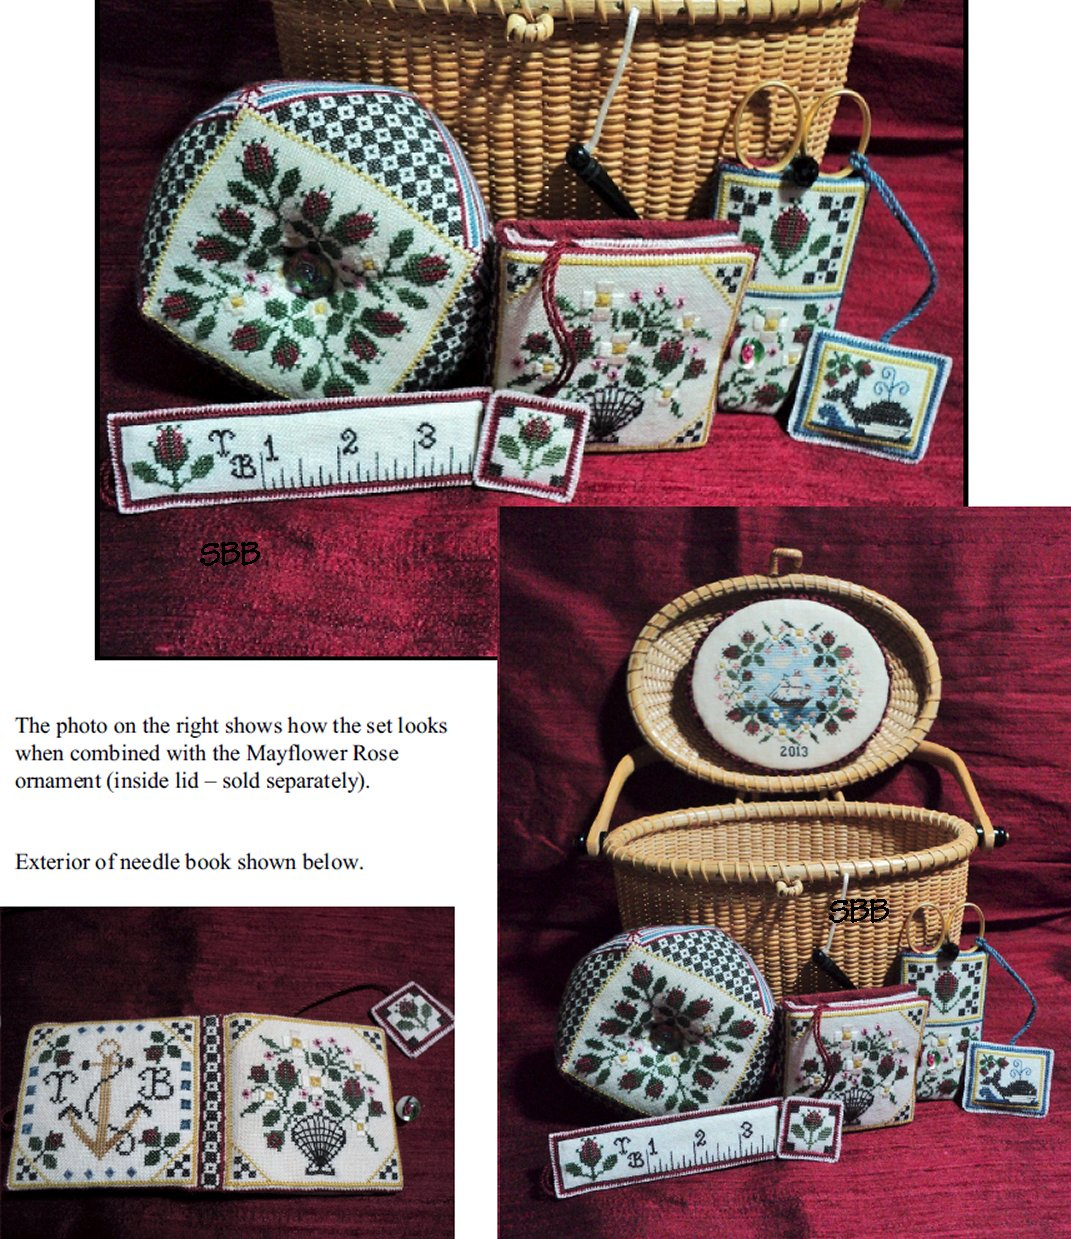 Heart's Ease Examplar Workes Mayflower Rose Sewing Set